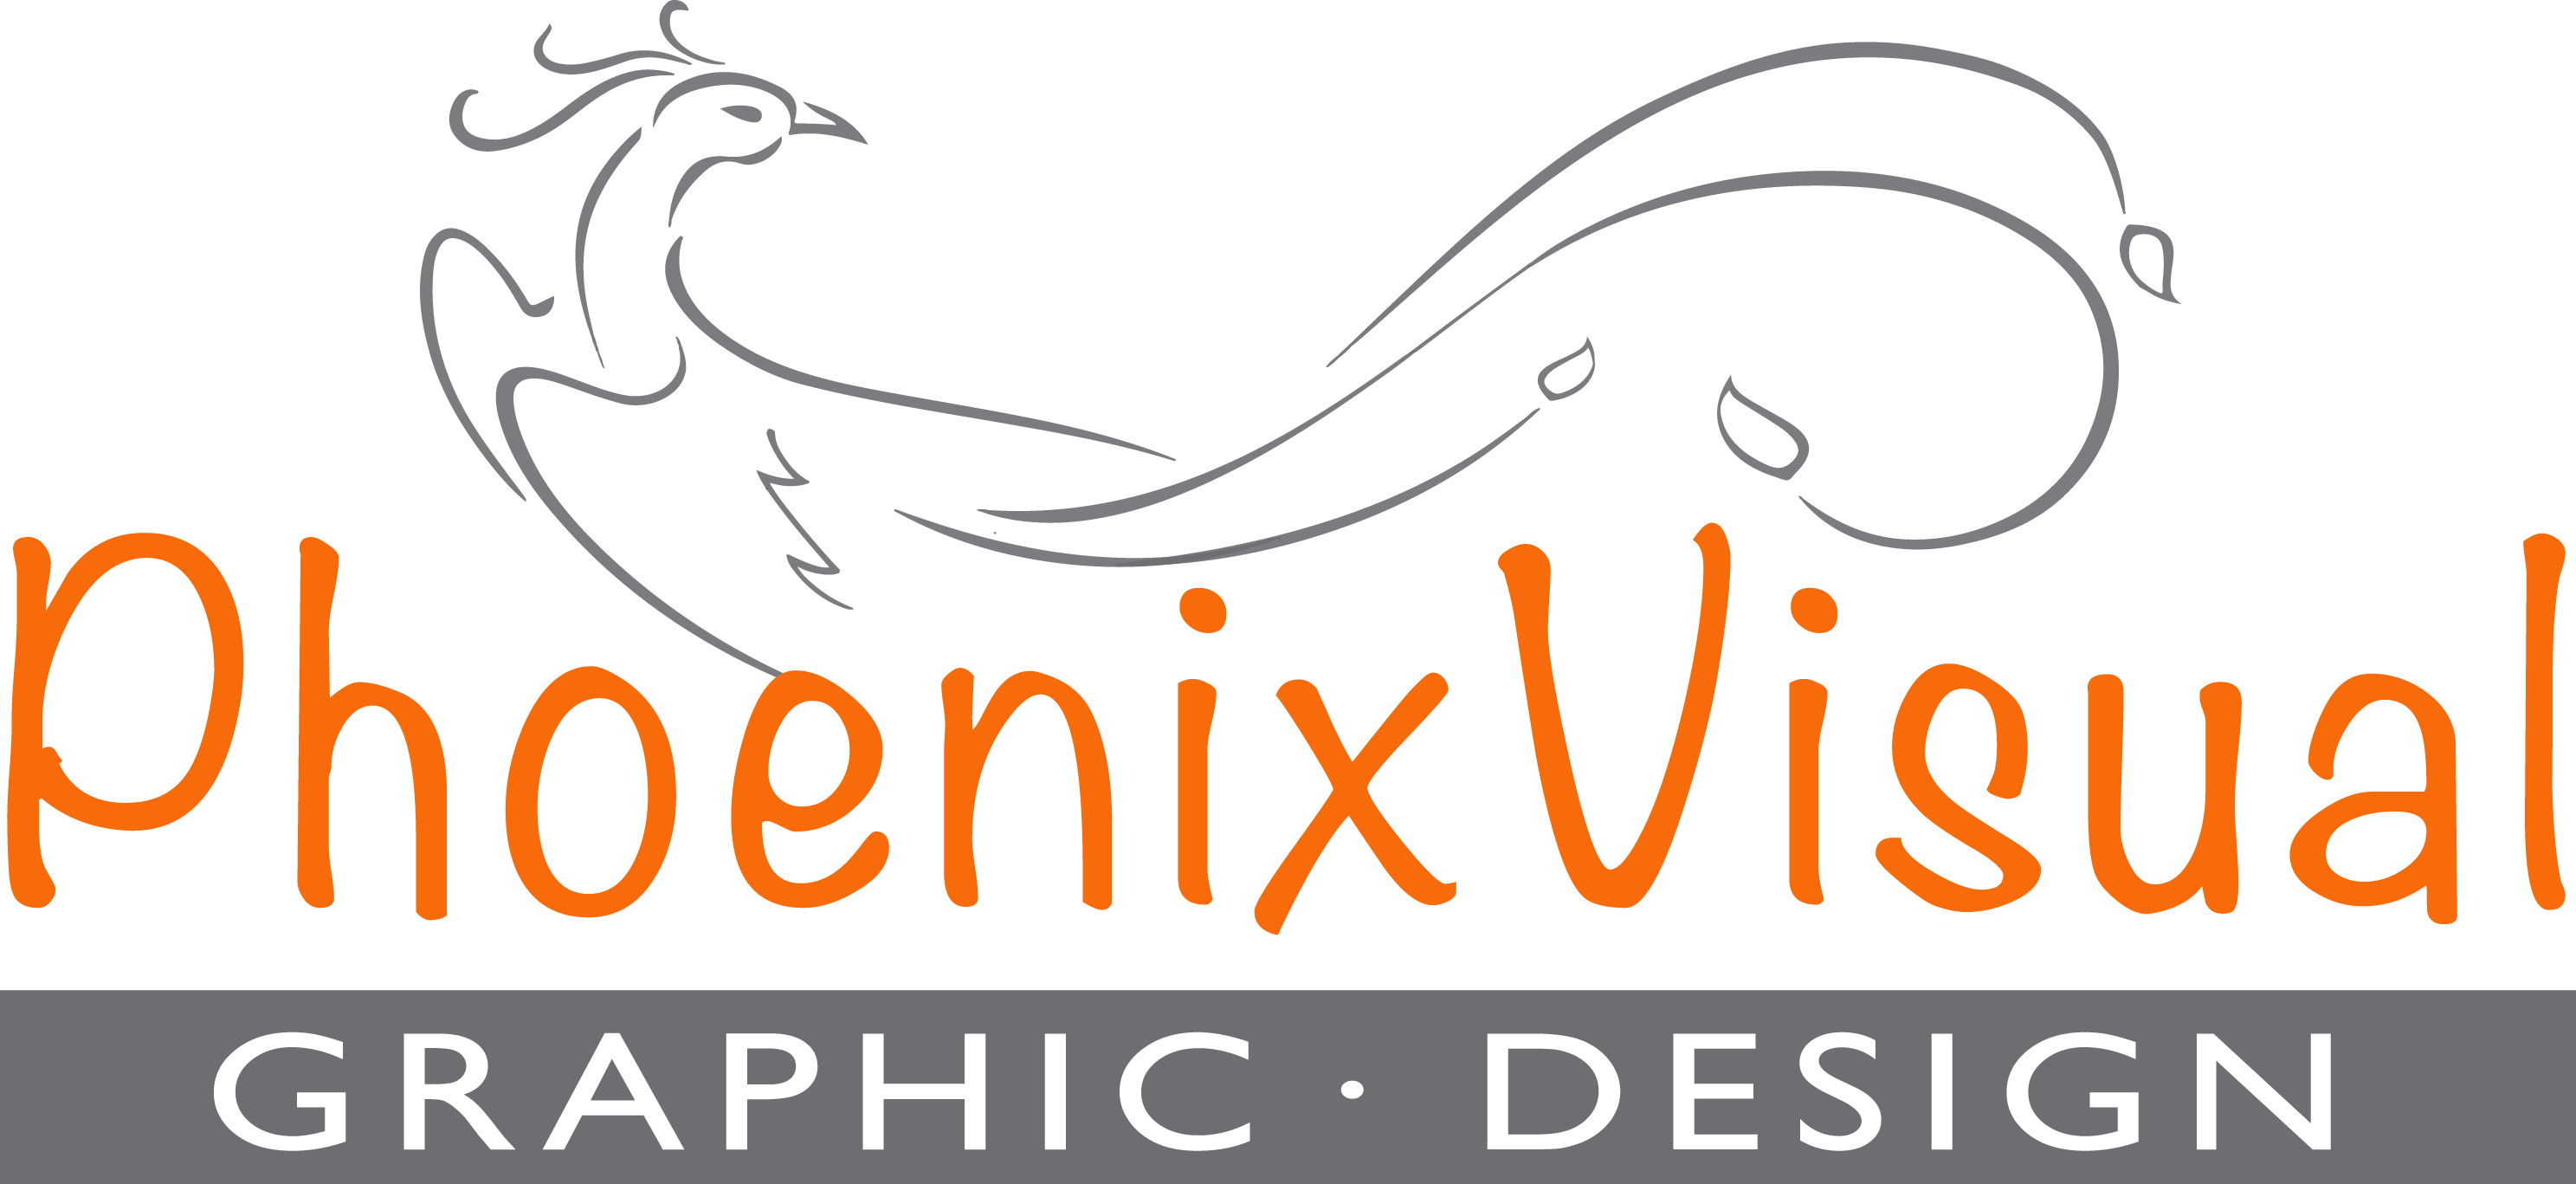 PhoenixVisual Graphic Design Grafico Vicenza